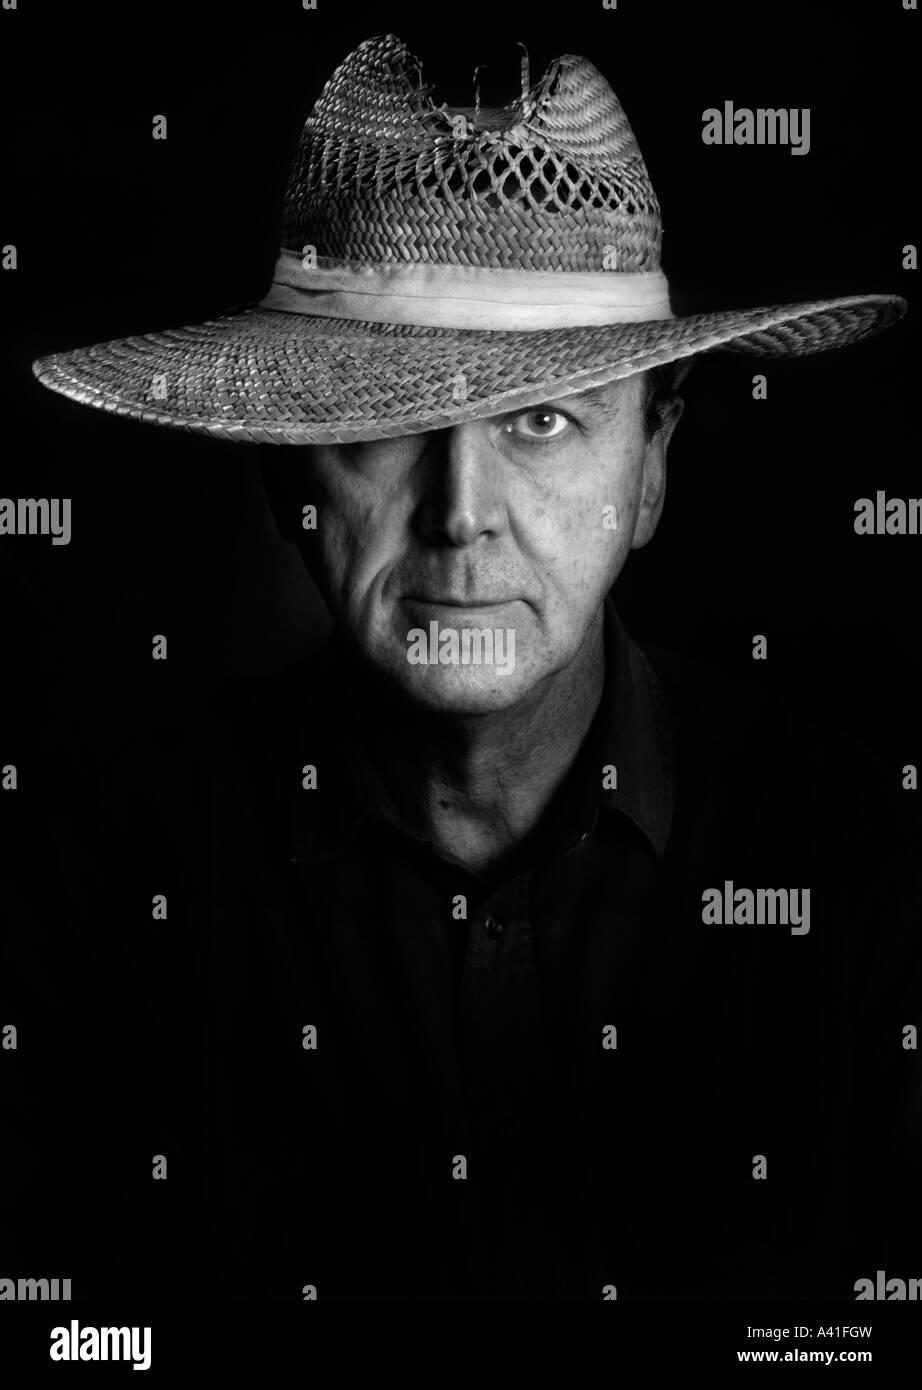 Black White Portrait of a man in a straw fishing hat or straw farmers hat or straw utility hat It s a man in a hat - Stock Image